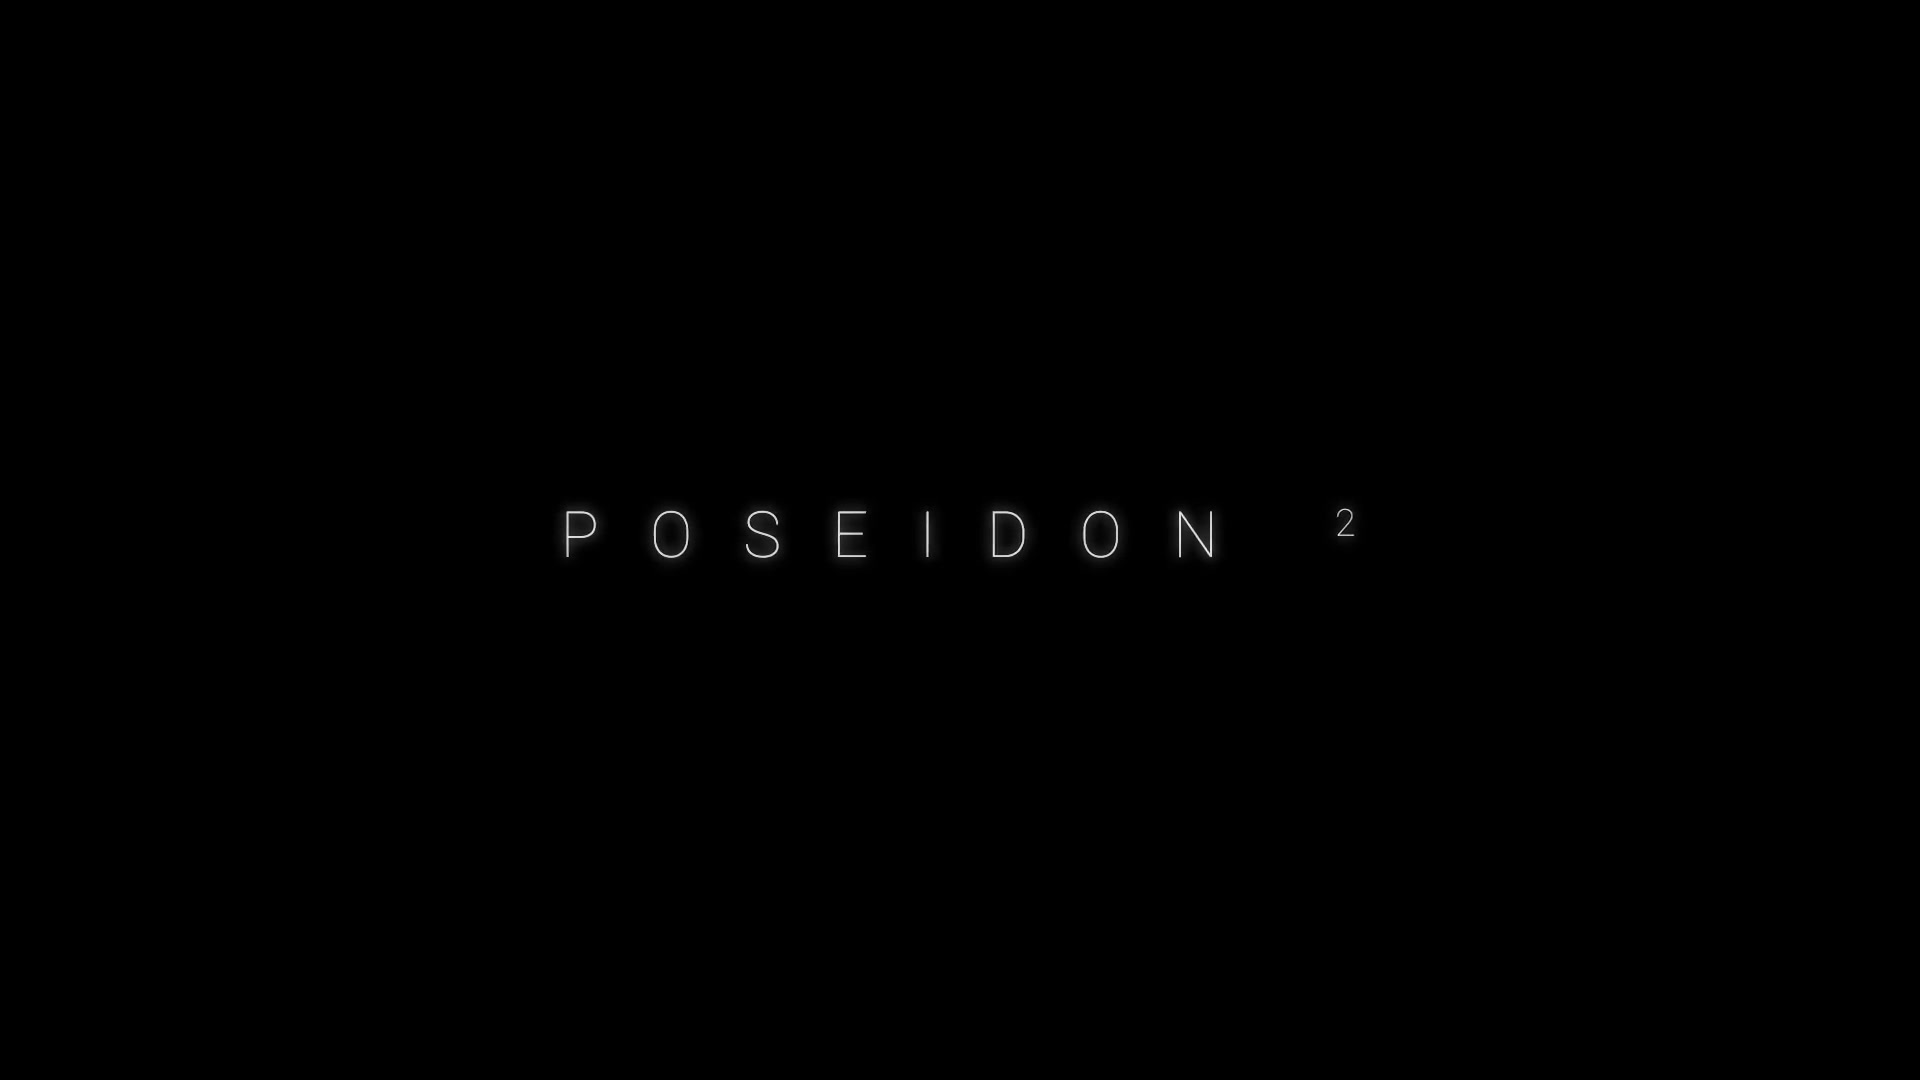 Poseidon 2 - Download Videohive 16823360